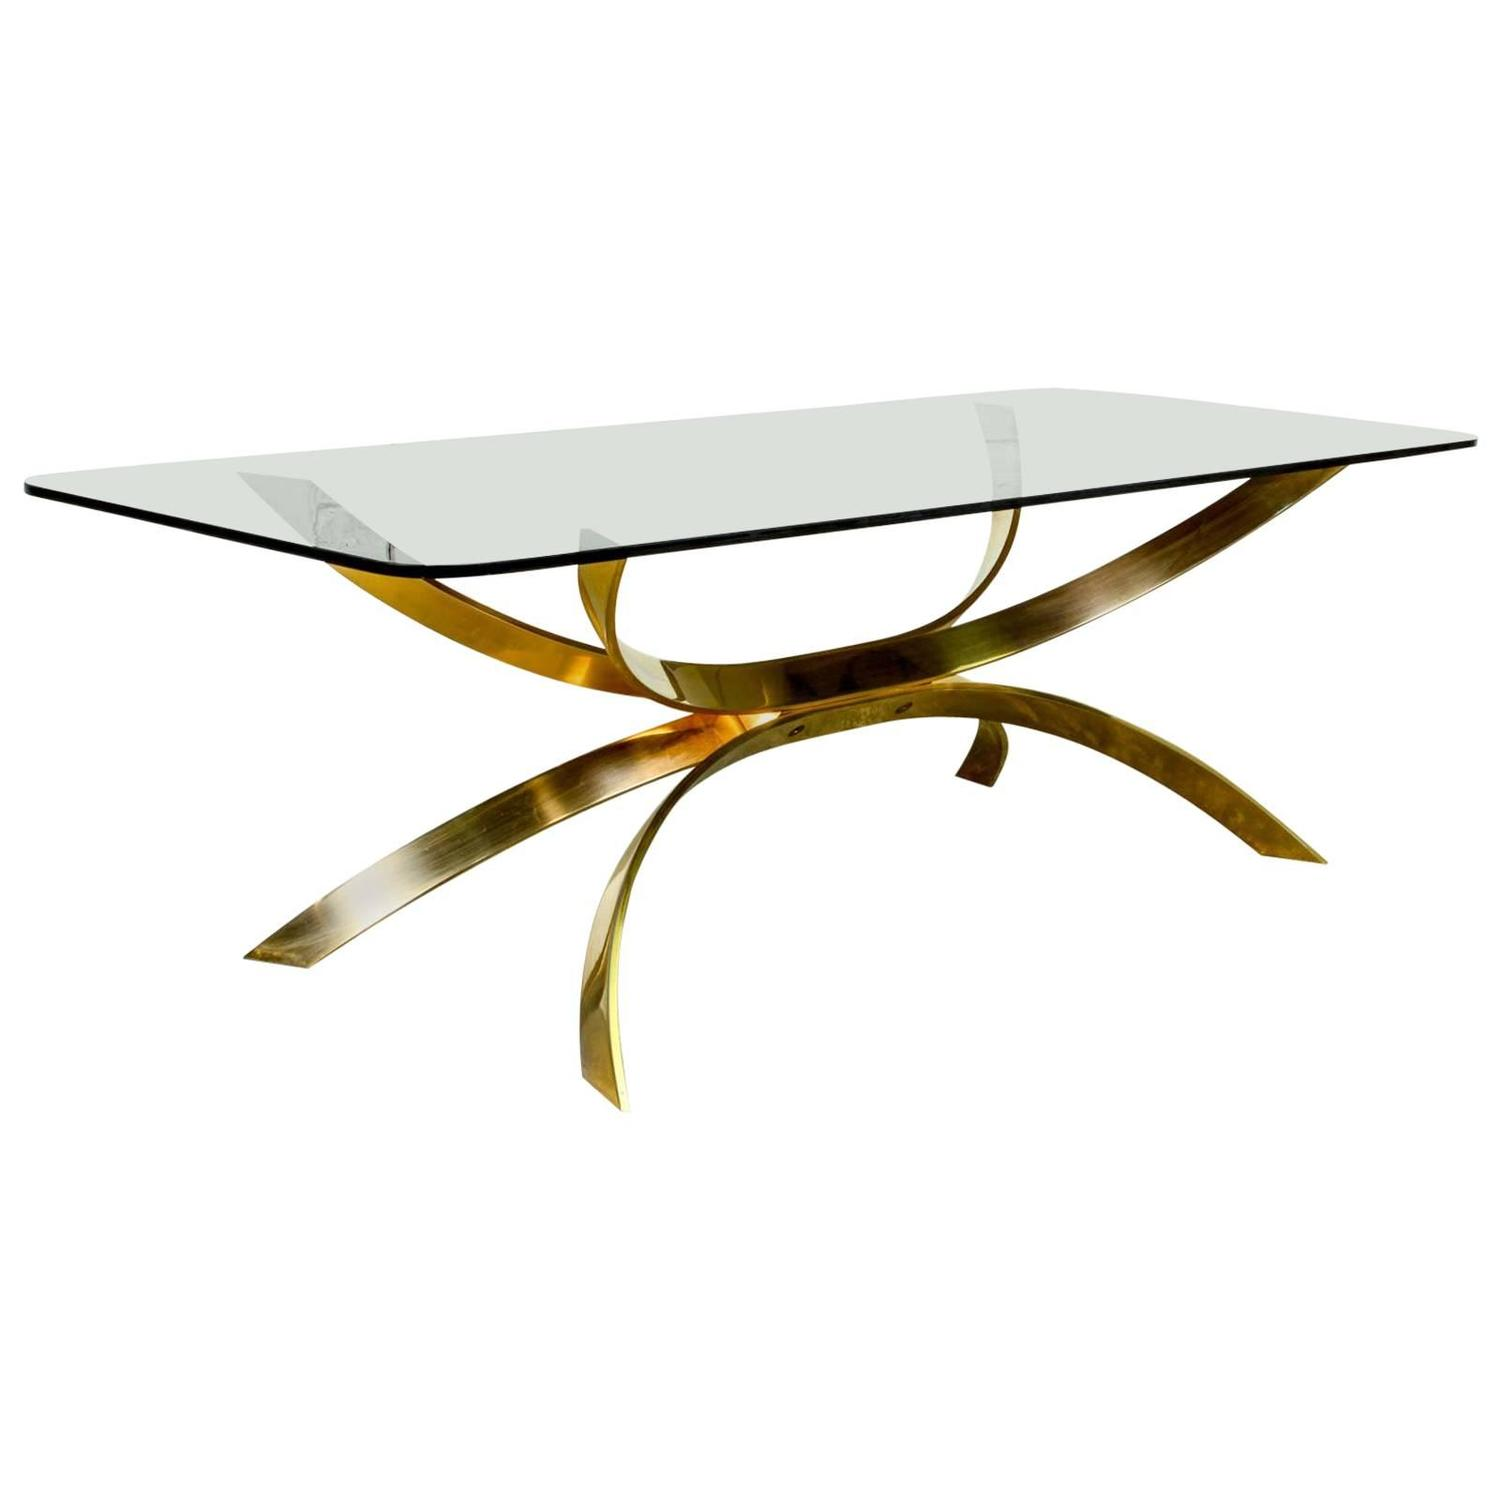 Gold Coffee and Cocktail Tables 135 For Sale at 1stdibs